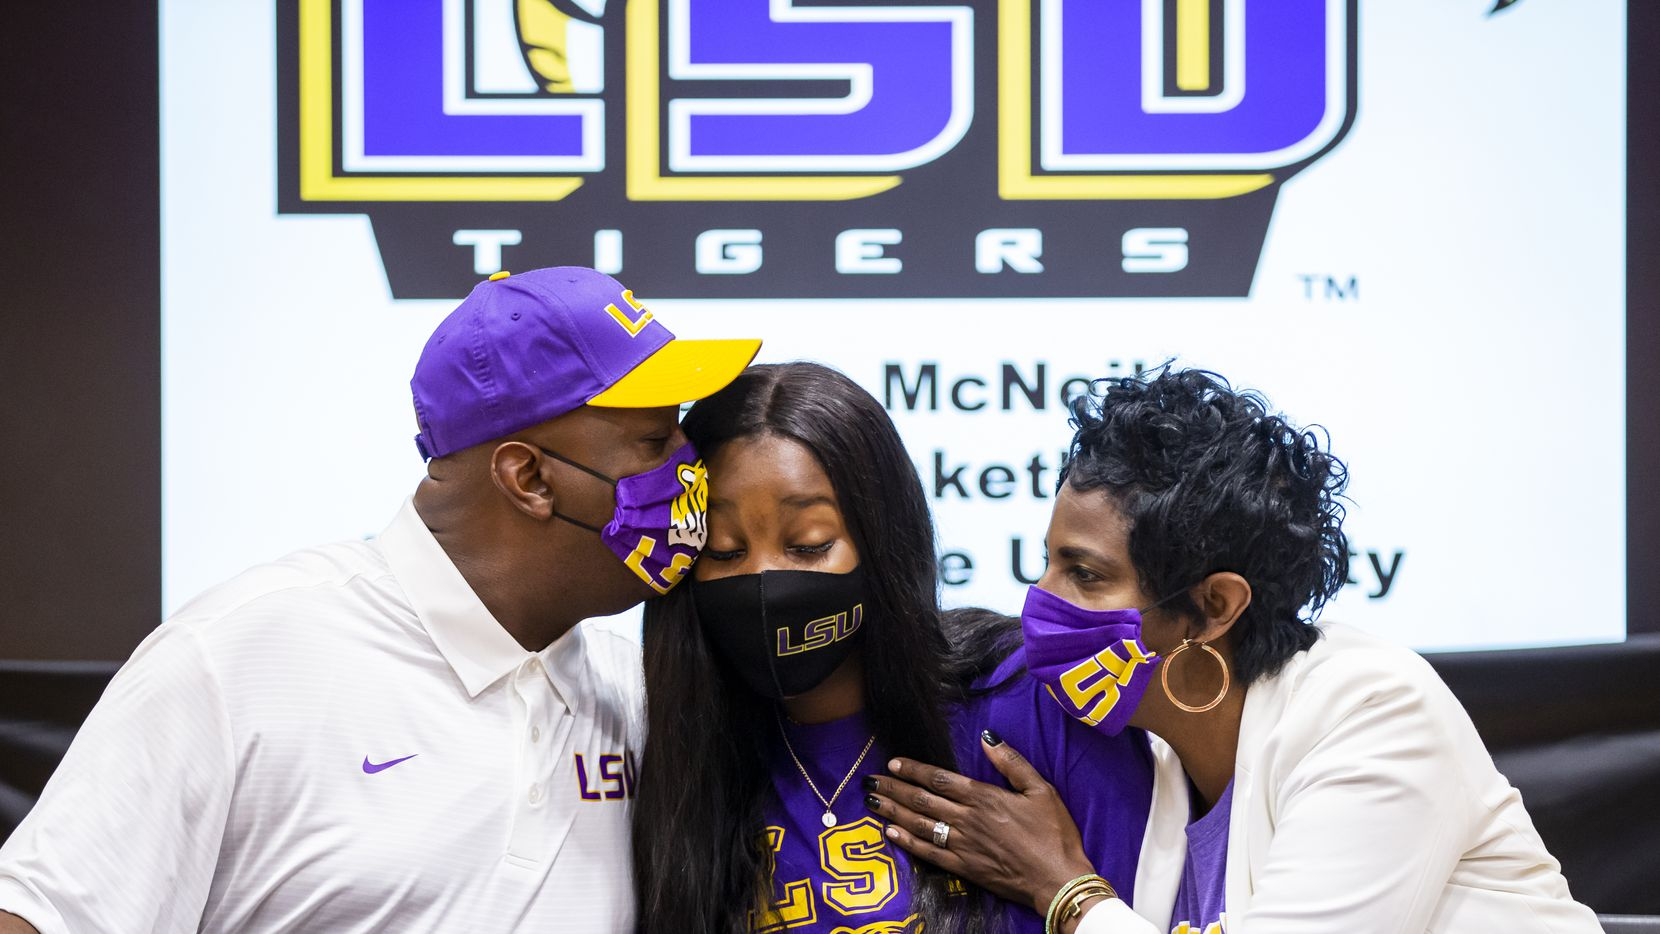 Rockwall-Heath girls basketball player Logyn McNeil is congratulated by her parents, Vincent and Sandy McNeil, during signing day at Rockwall-Heath High School in Heath, Wednesday, November 11, 2020. Logyn signed with Louisiana State University.